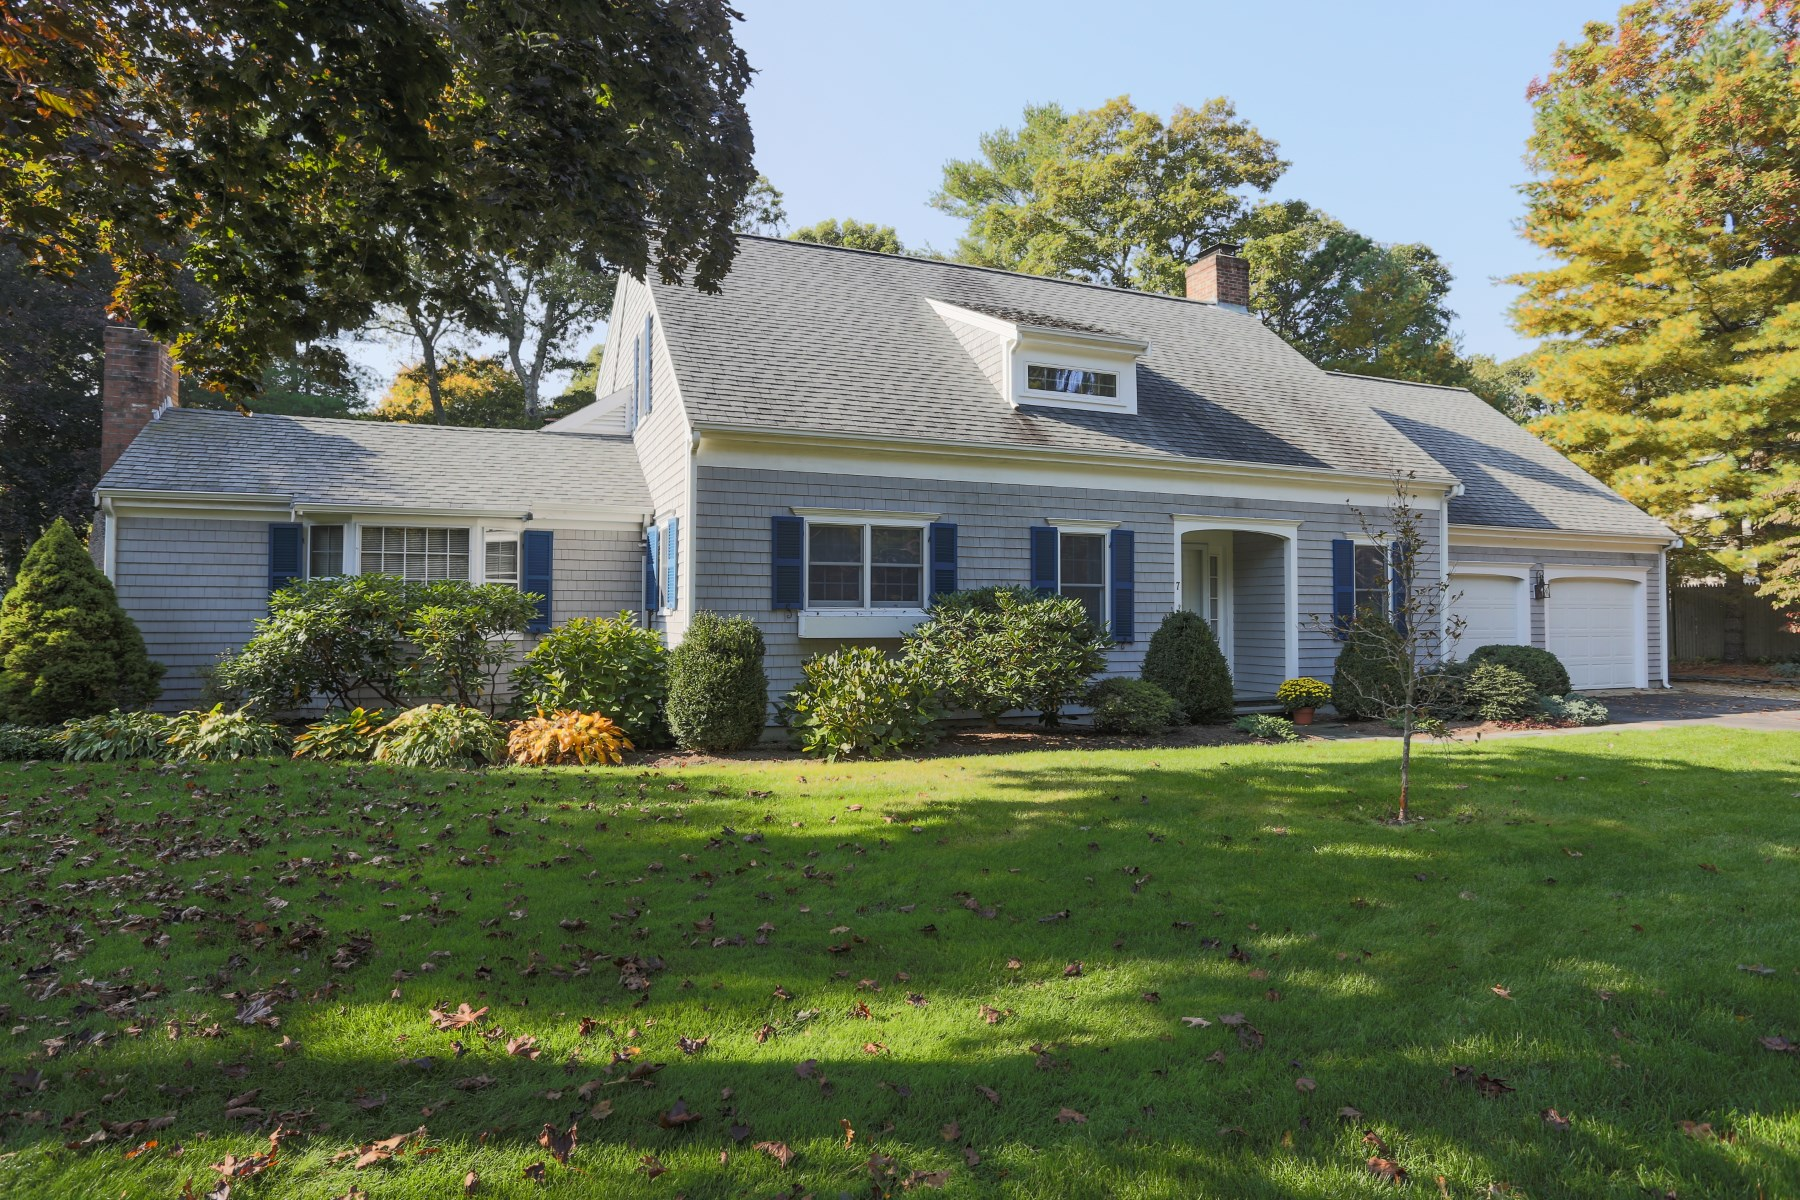 Single Family Home for Sale at 7 Mayflower Lane, Osterville, MA Osterville, Massachusetts, 02655 United States